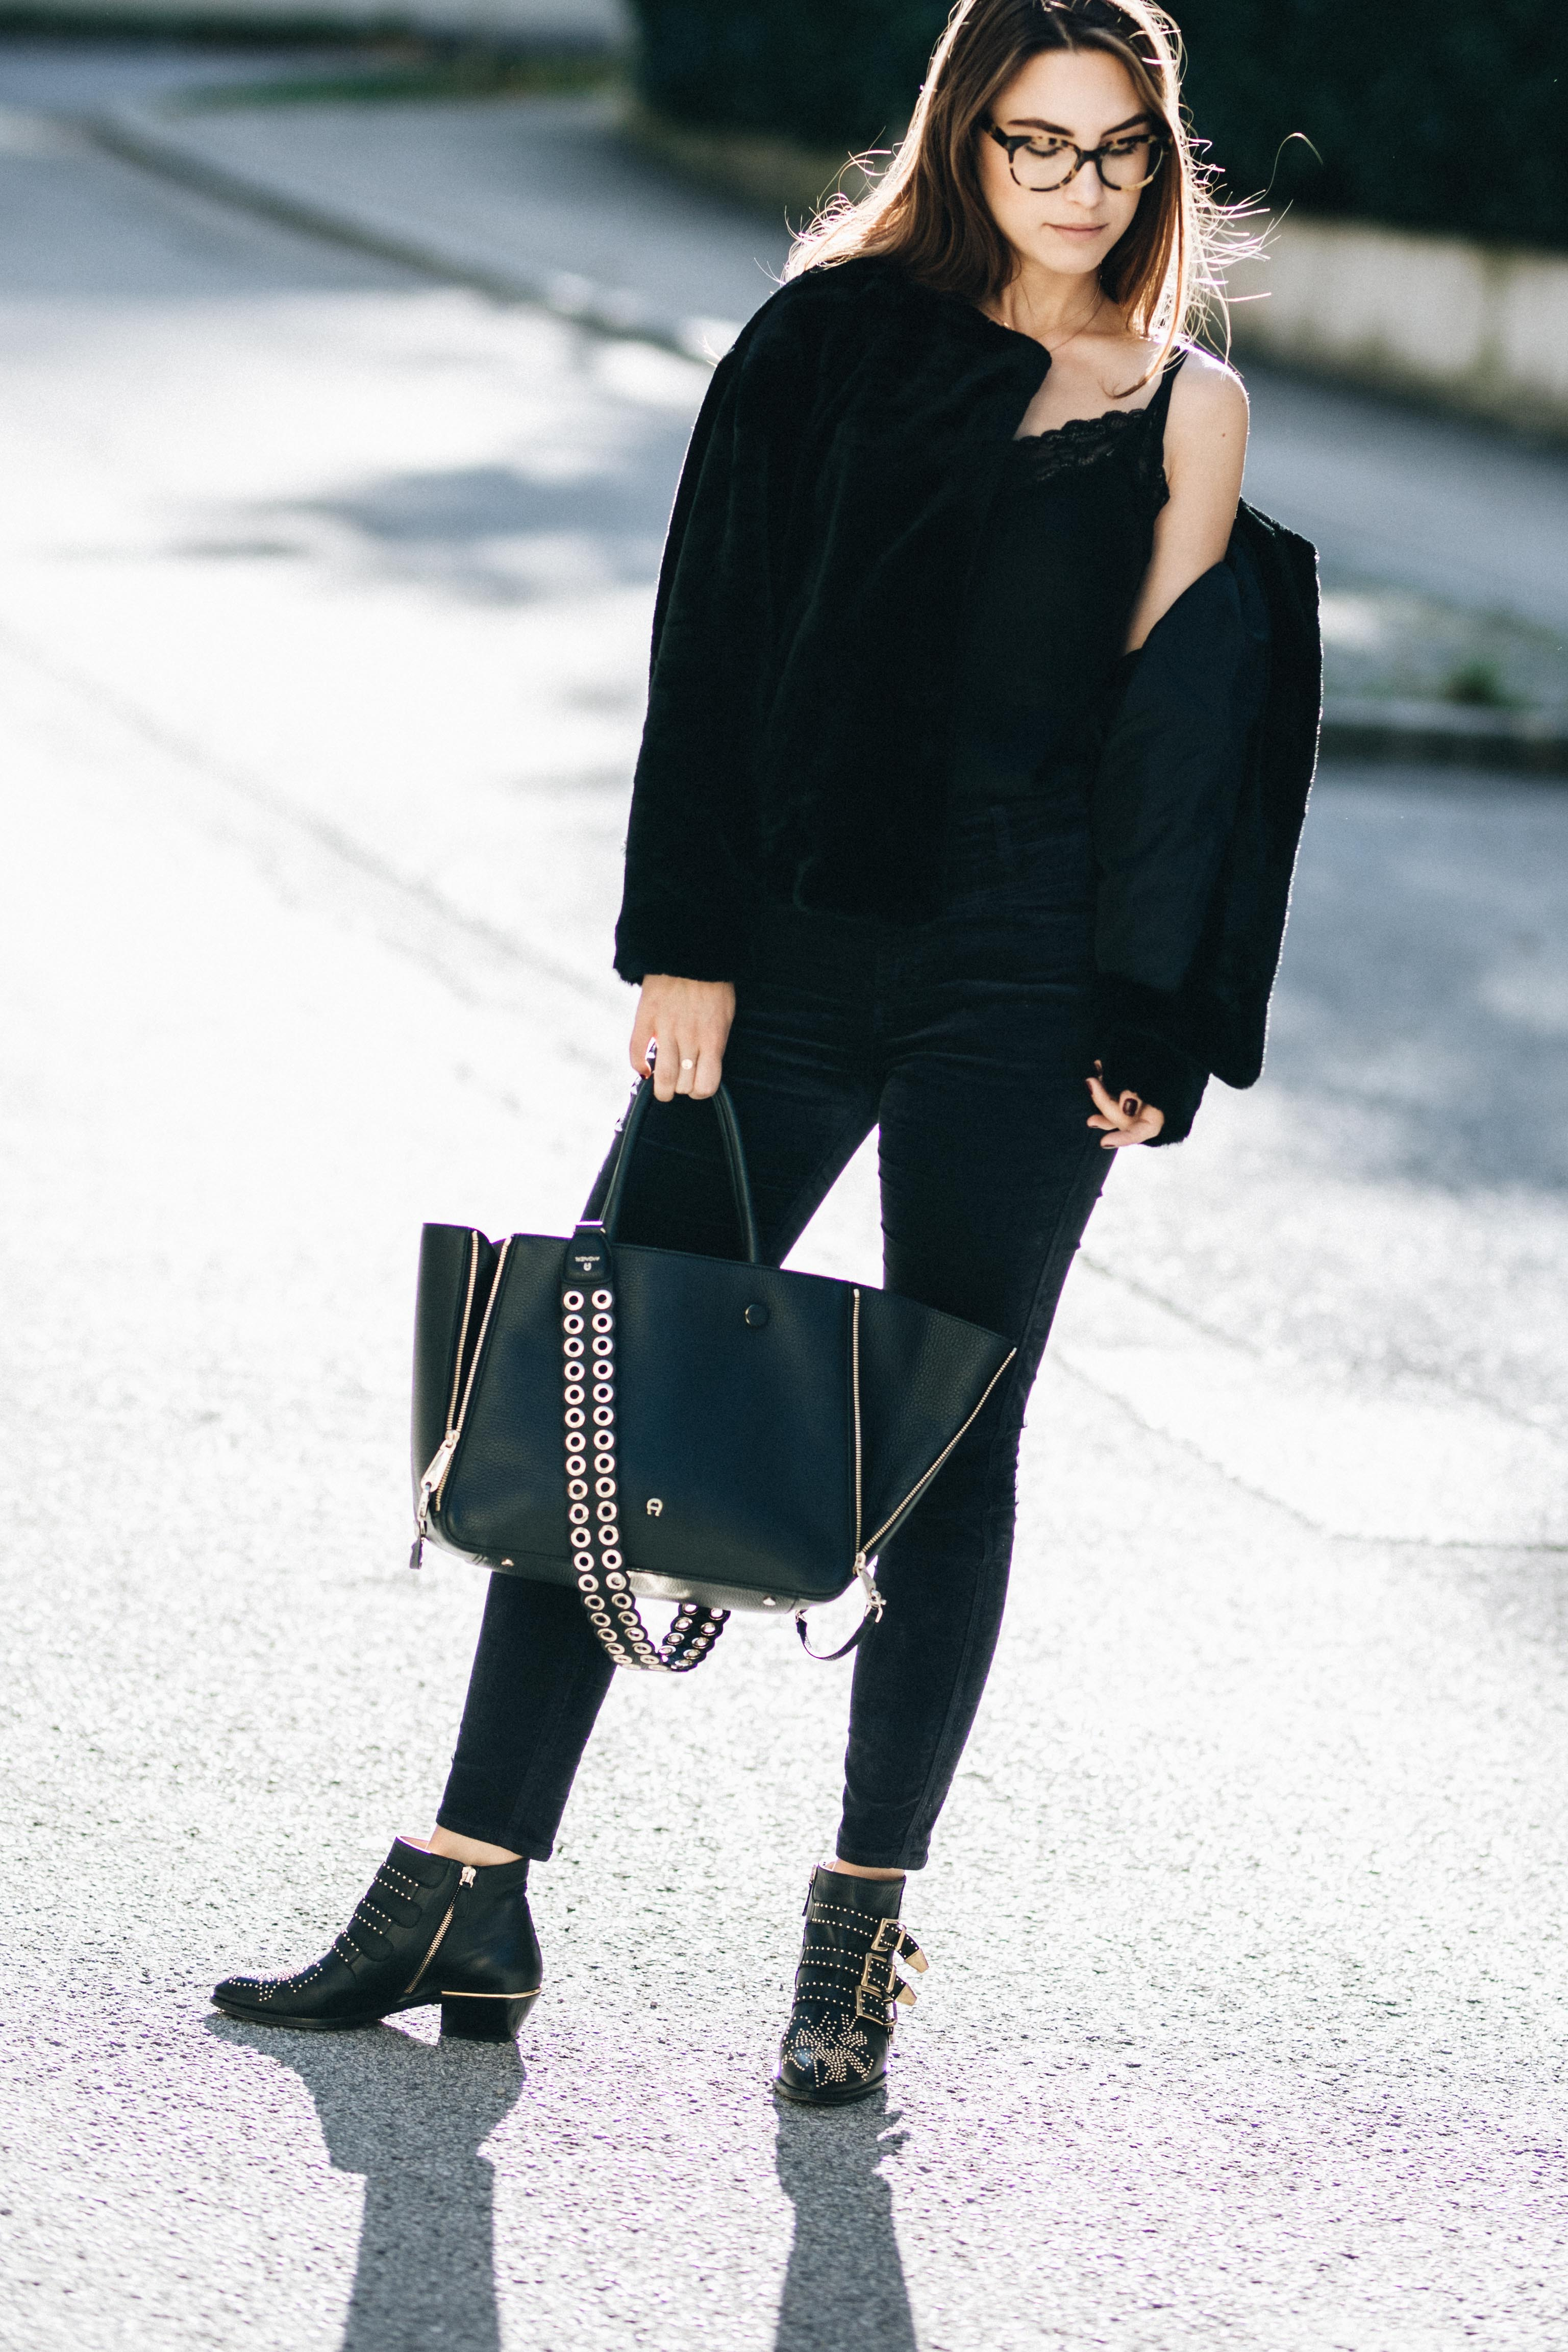 Outfit: How to wear black from head to toe without looking boring | You rock my life